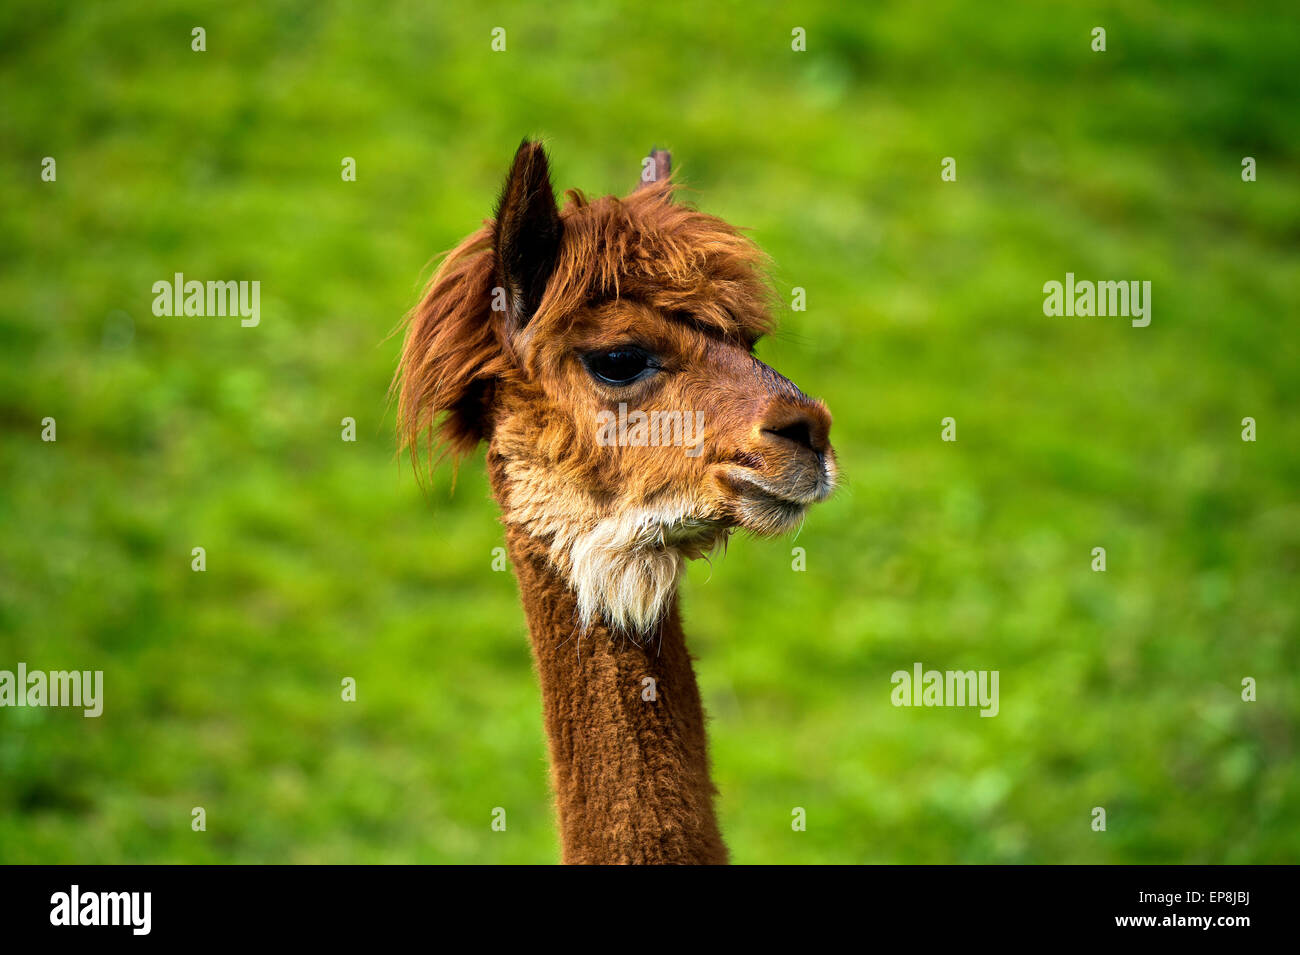 Llama (Llama glama), young animal, portrait, Switzerland - Stock Image